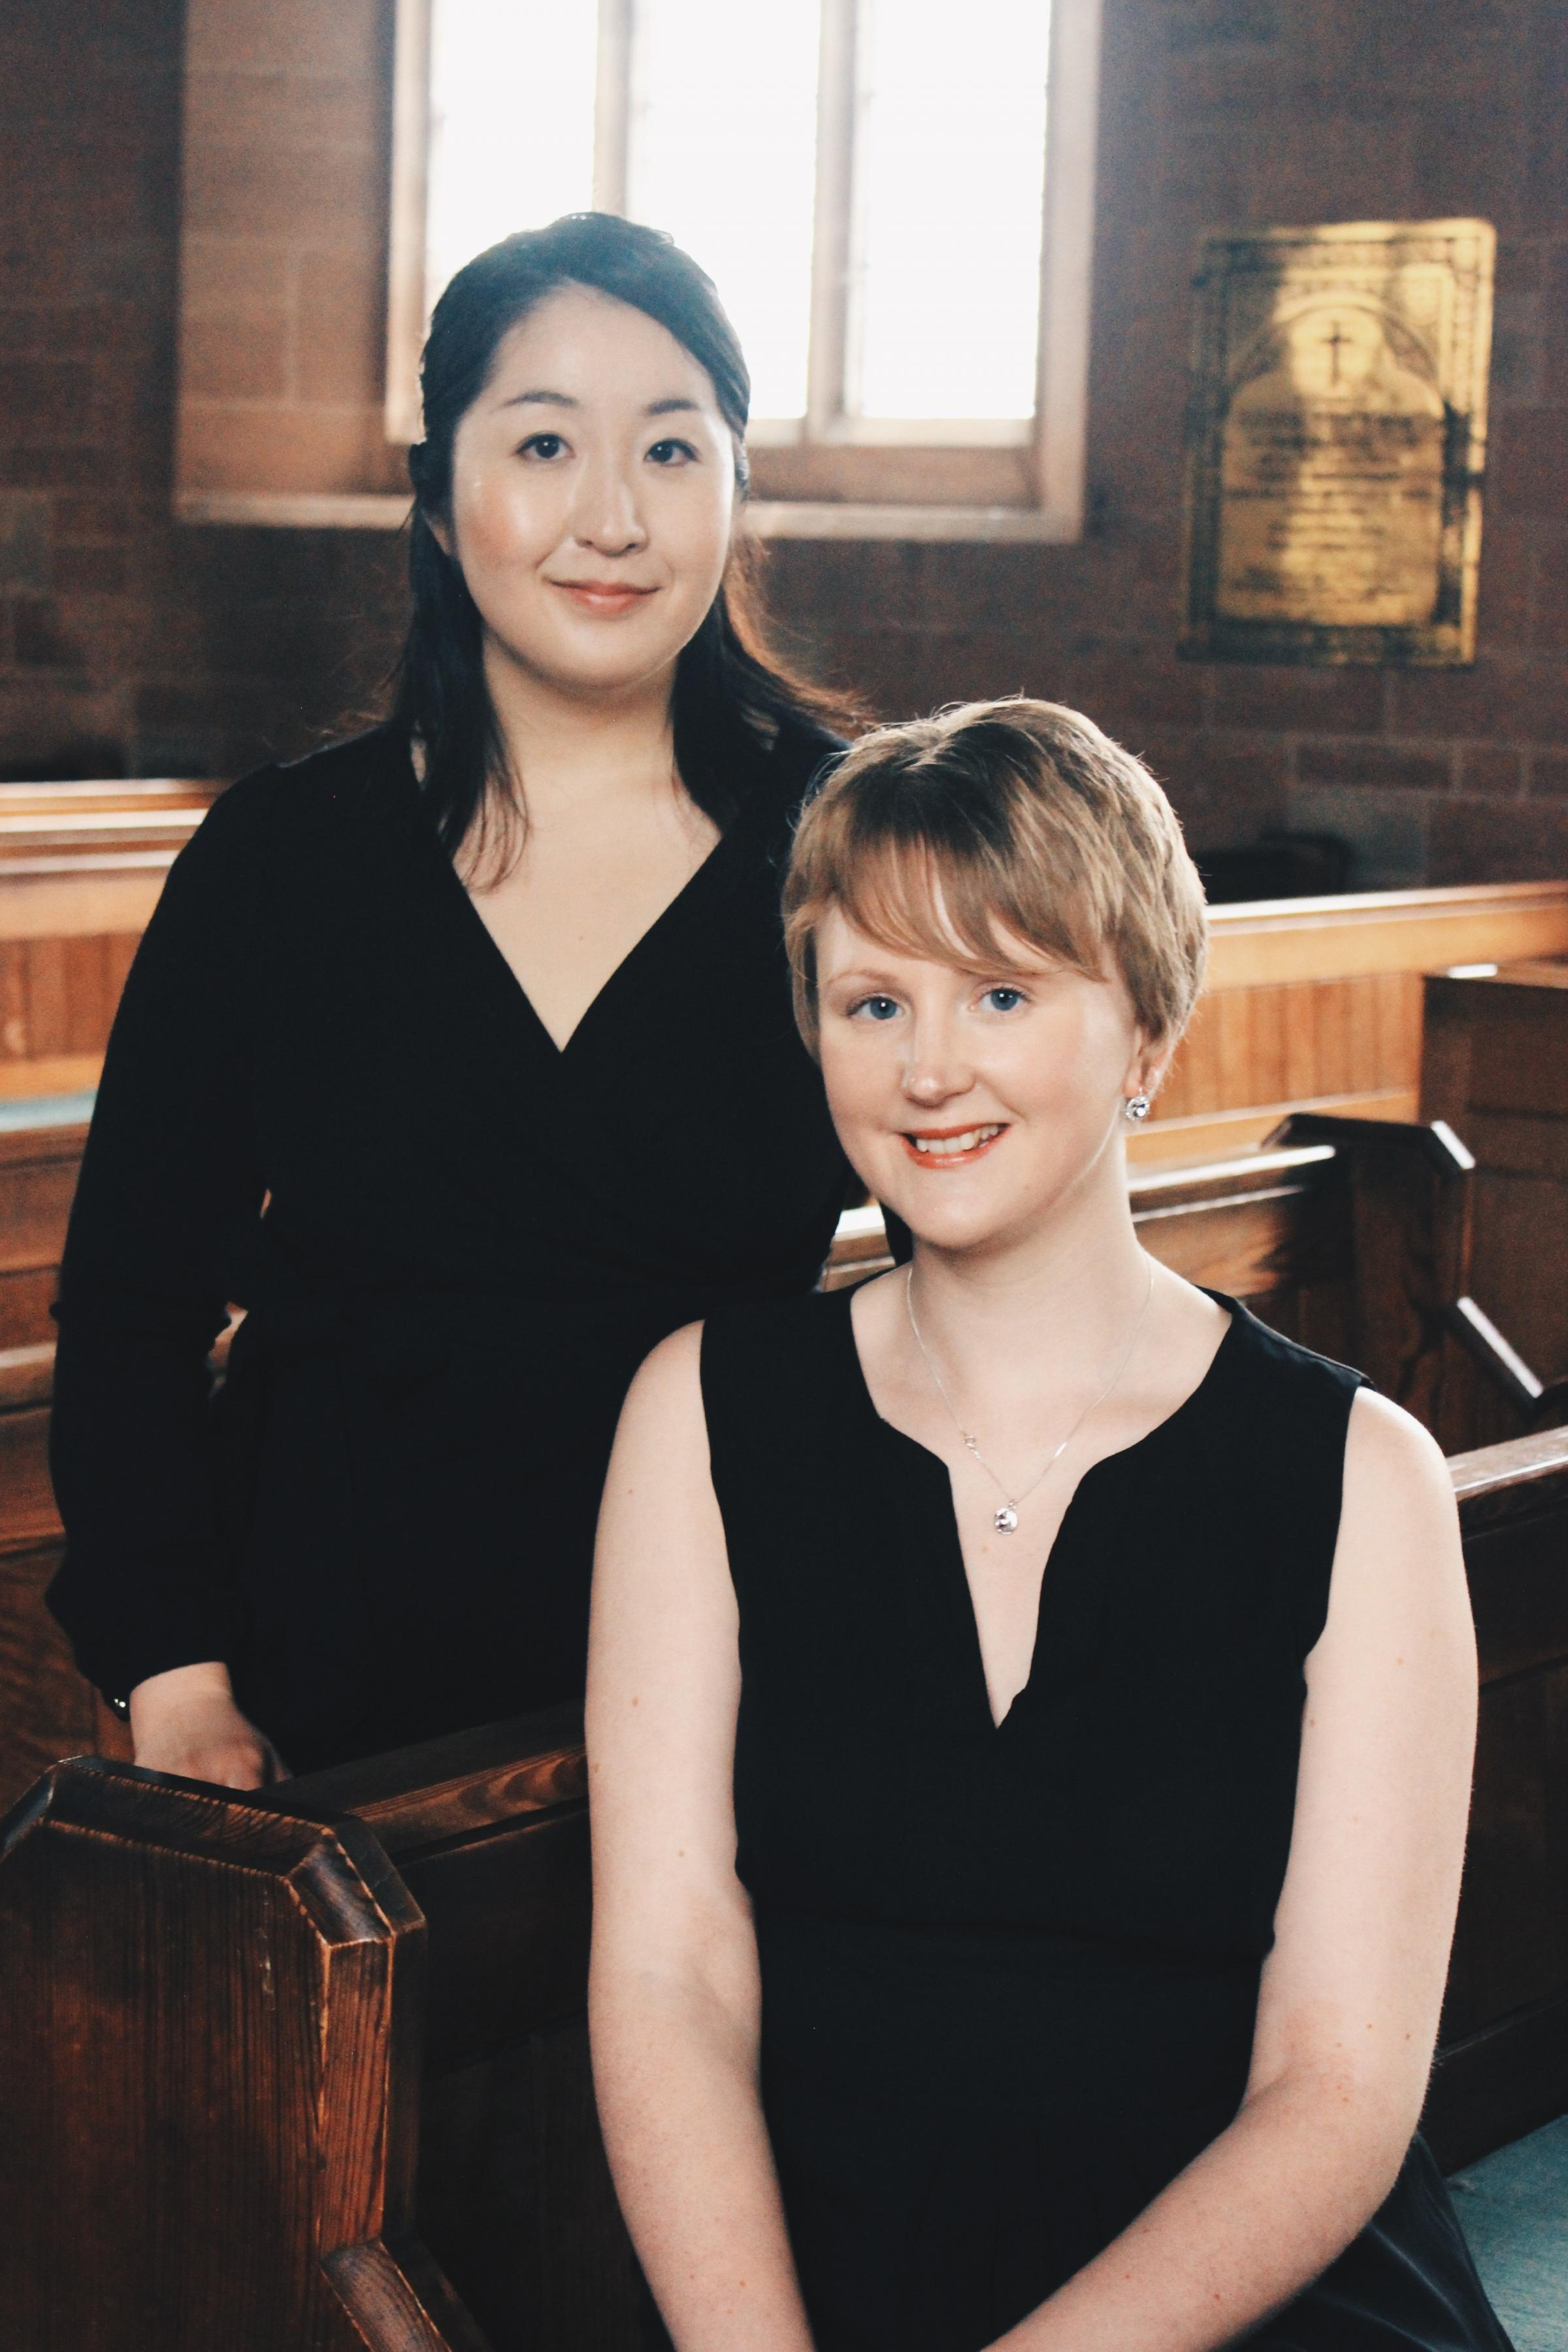 Kinver musicians Ayaki Davies and Hannah McFarland will host a varied programme of music at St Peter's Church on Saturday, September 30.